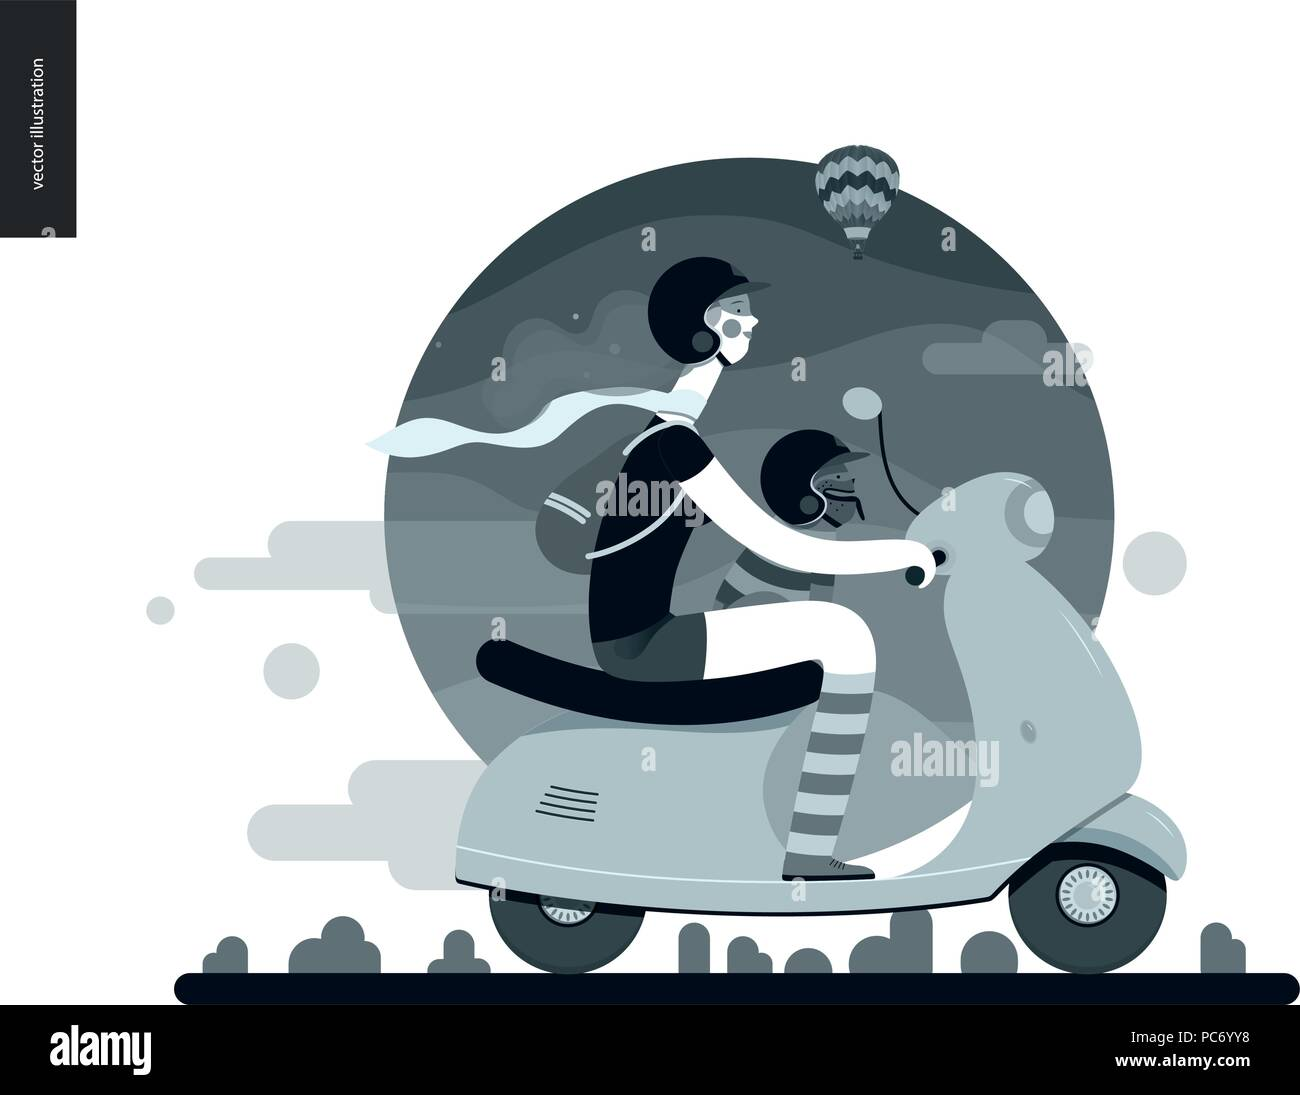 Girl on a scooter - flat black and white vector concept illustration of girl wearing helmet riding scooter, french bulldog on lap wearing small helmet Stock Vector